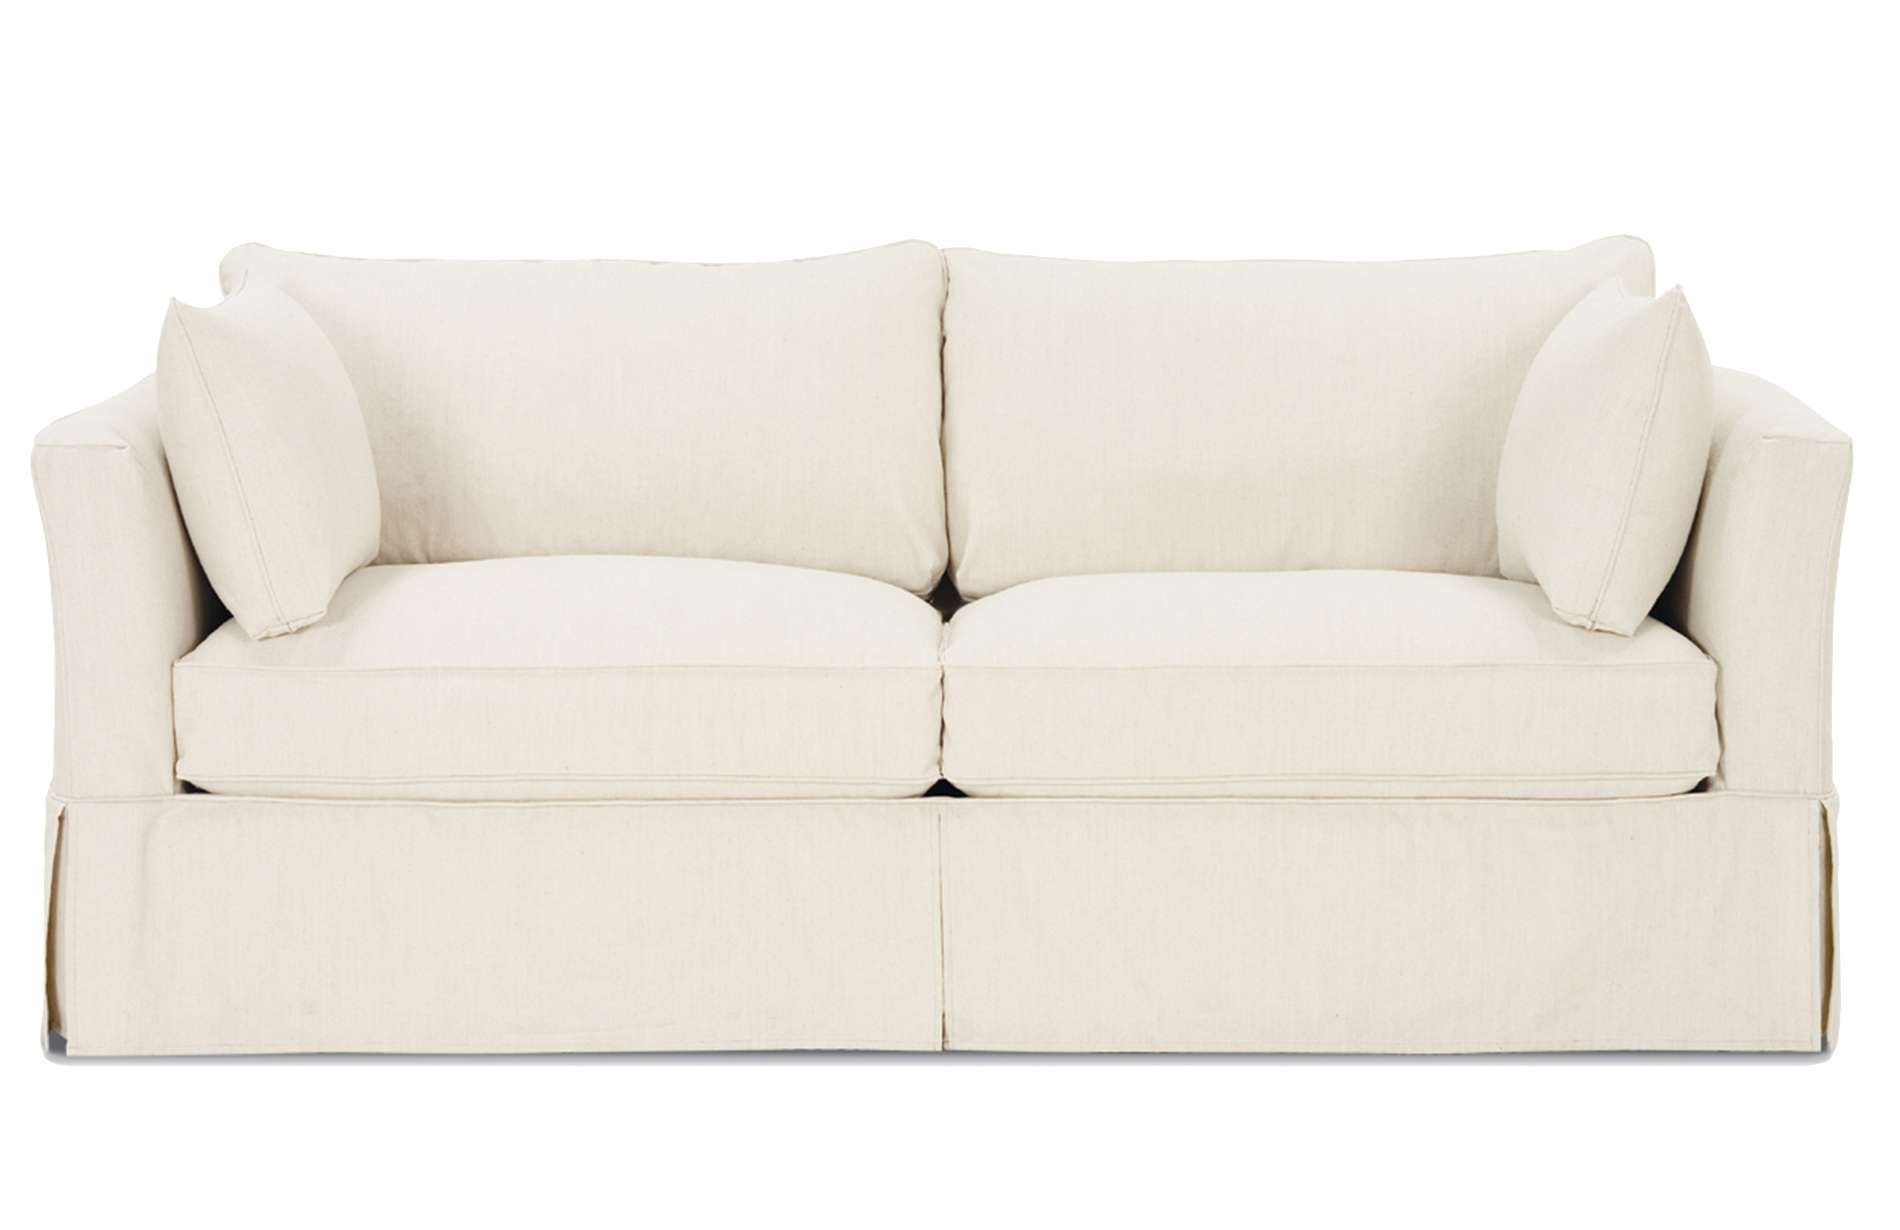 The Darby Slipcover Sofa Is An Elegant Modern Design From